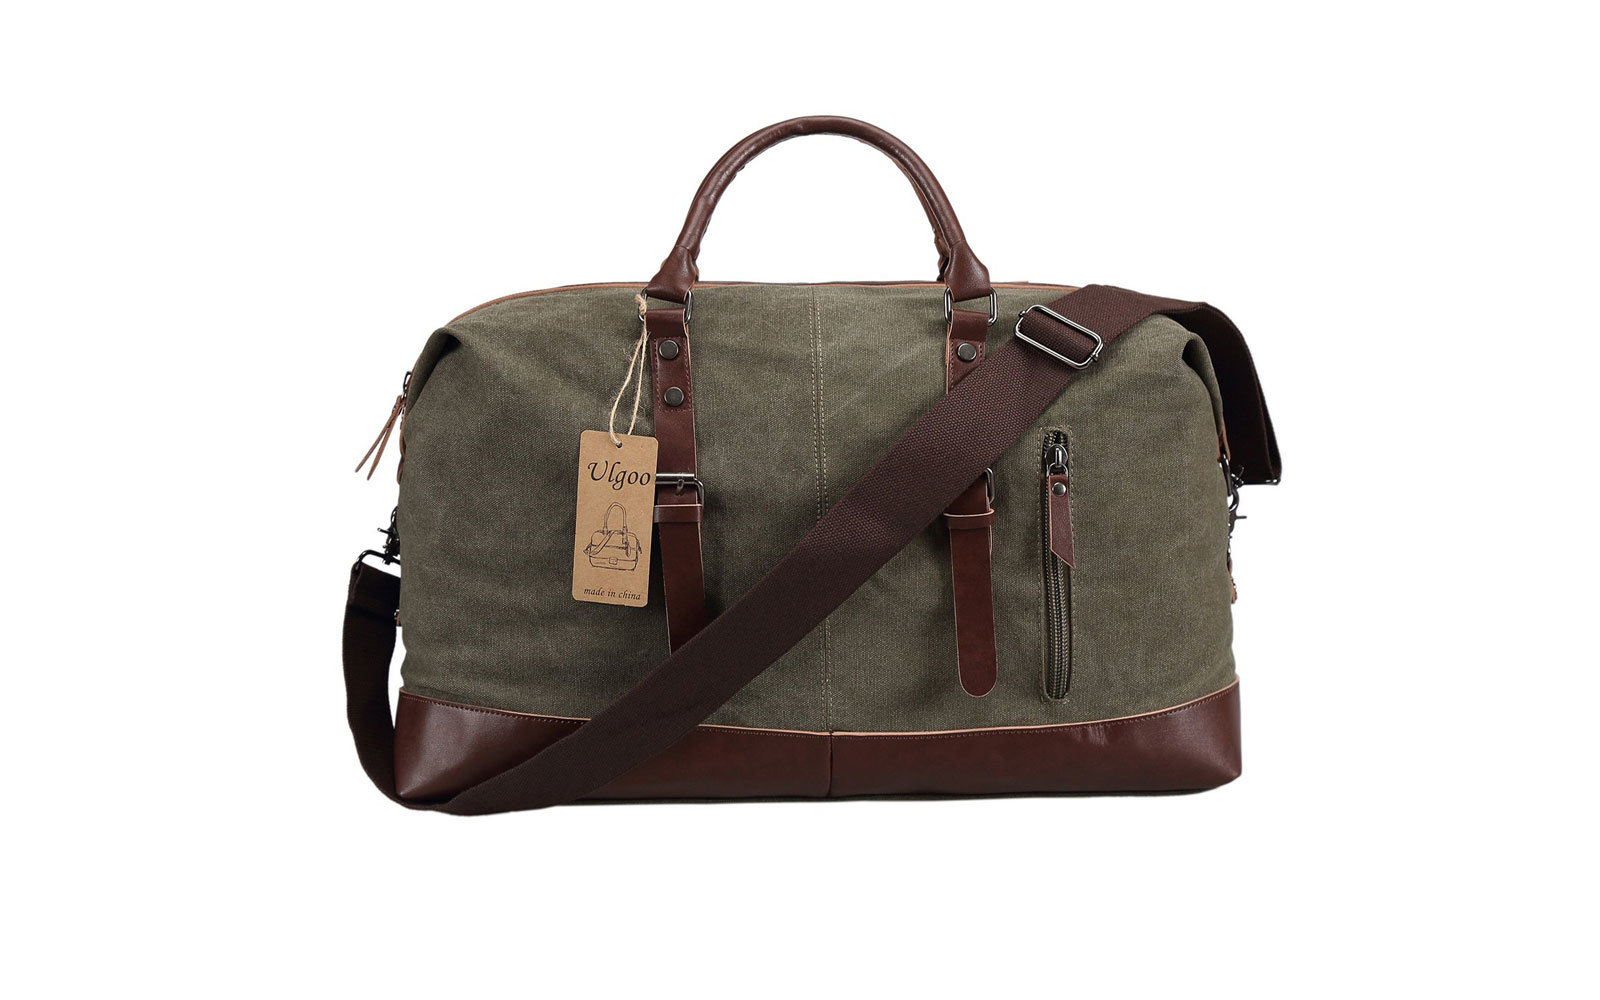 Ulgoo Travel Duffel Bag Canvas Bag